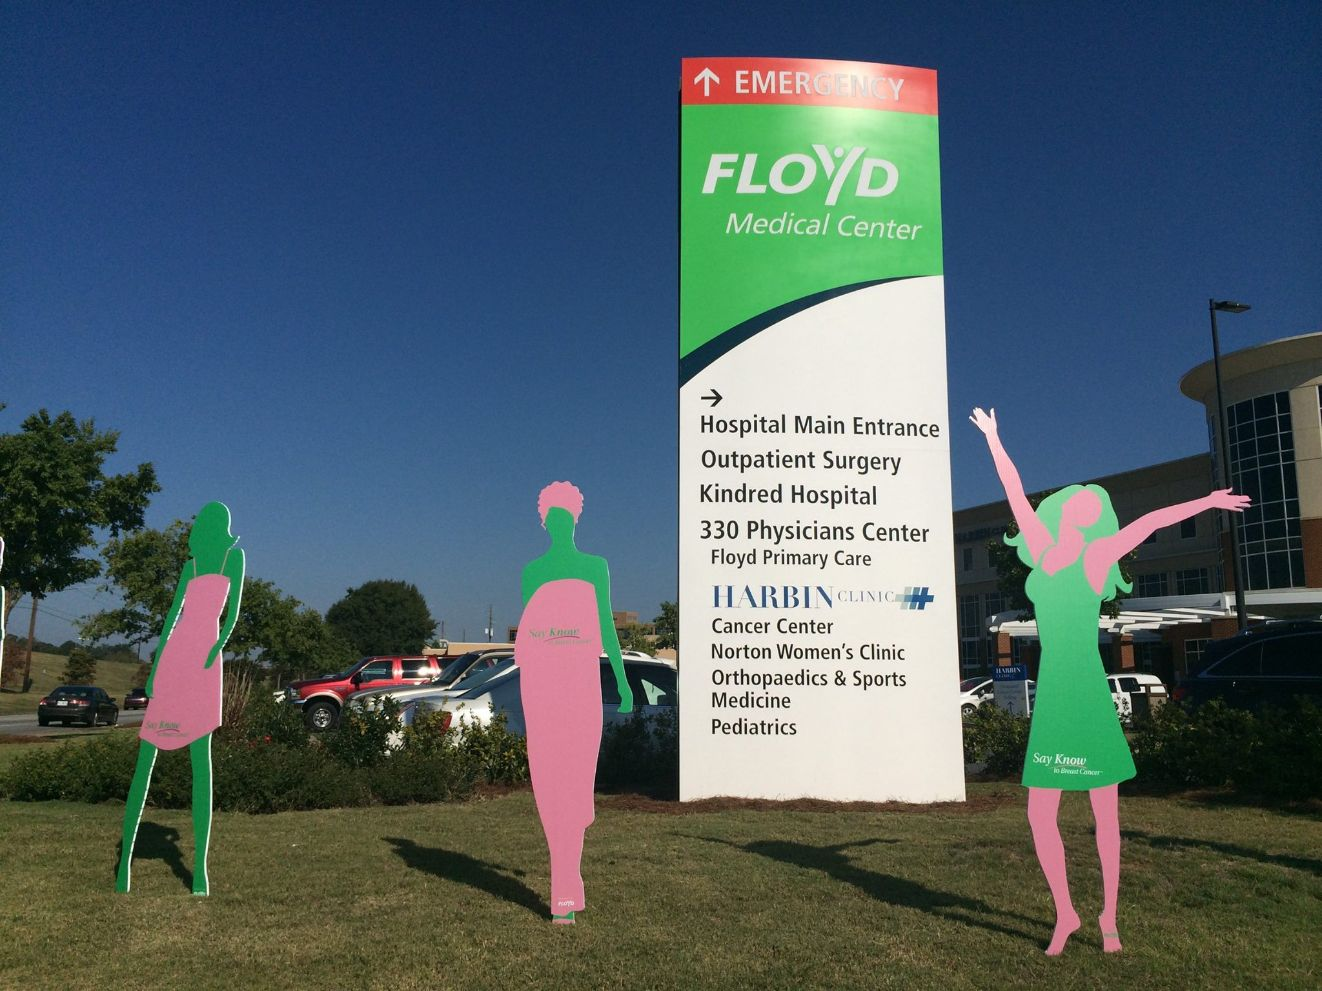 floyd medical wayfinding sign and cutouts